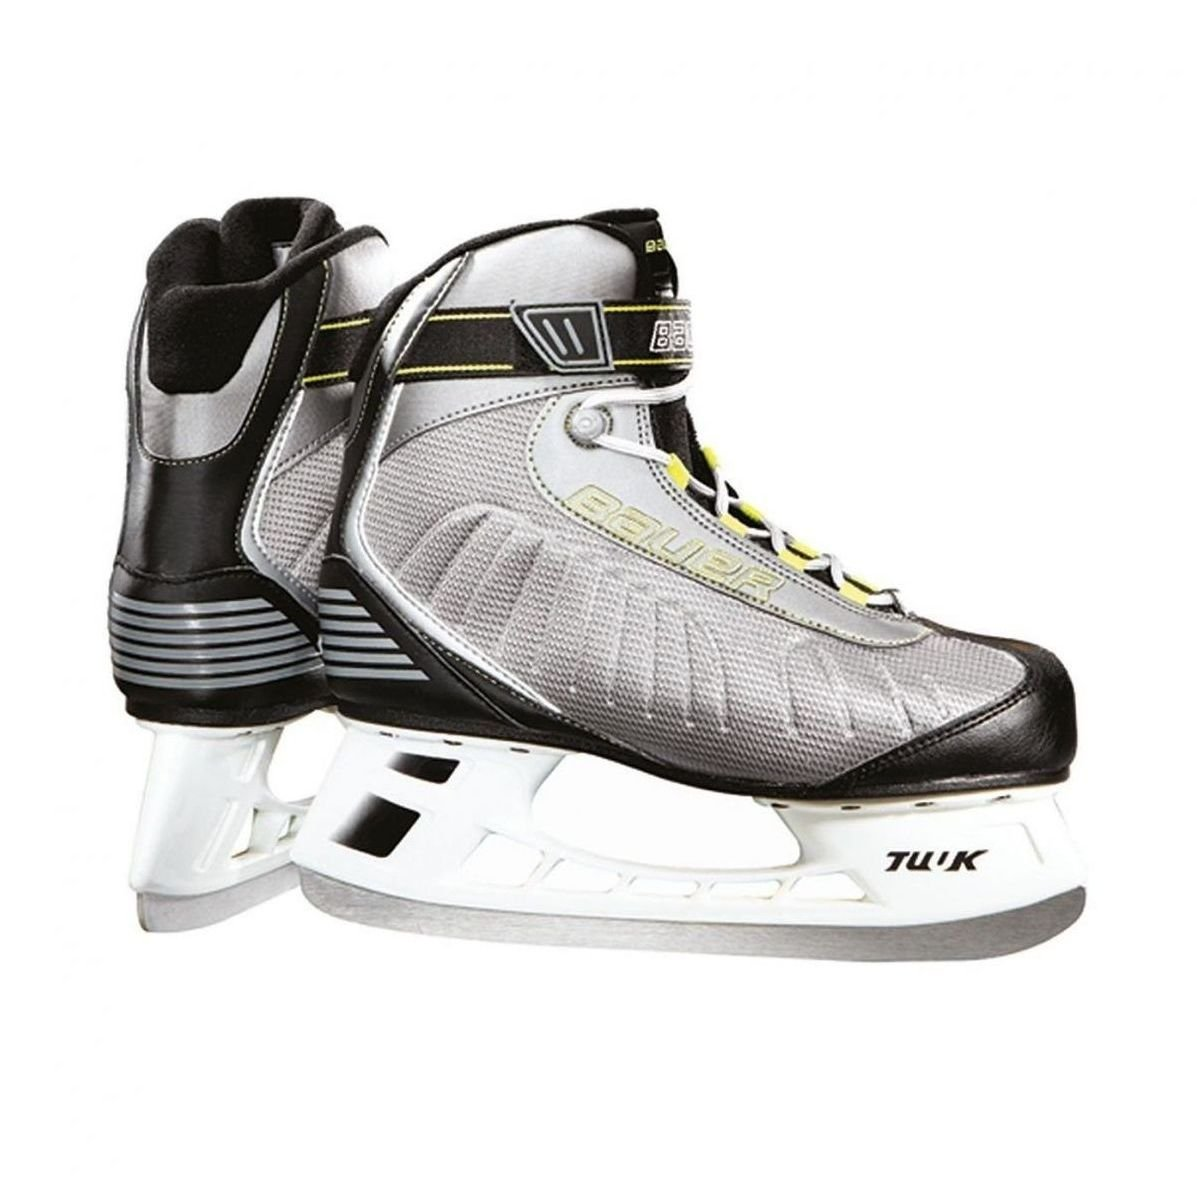 patines sobre hielo bauer fast